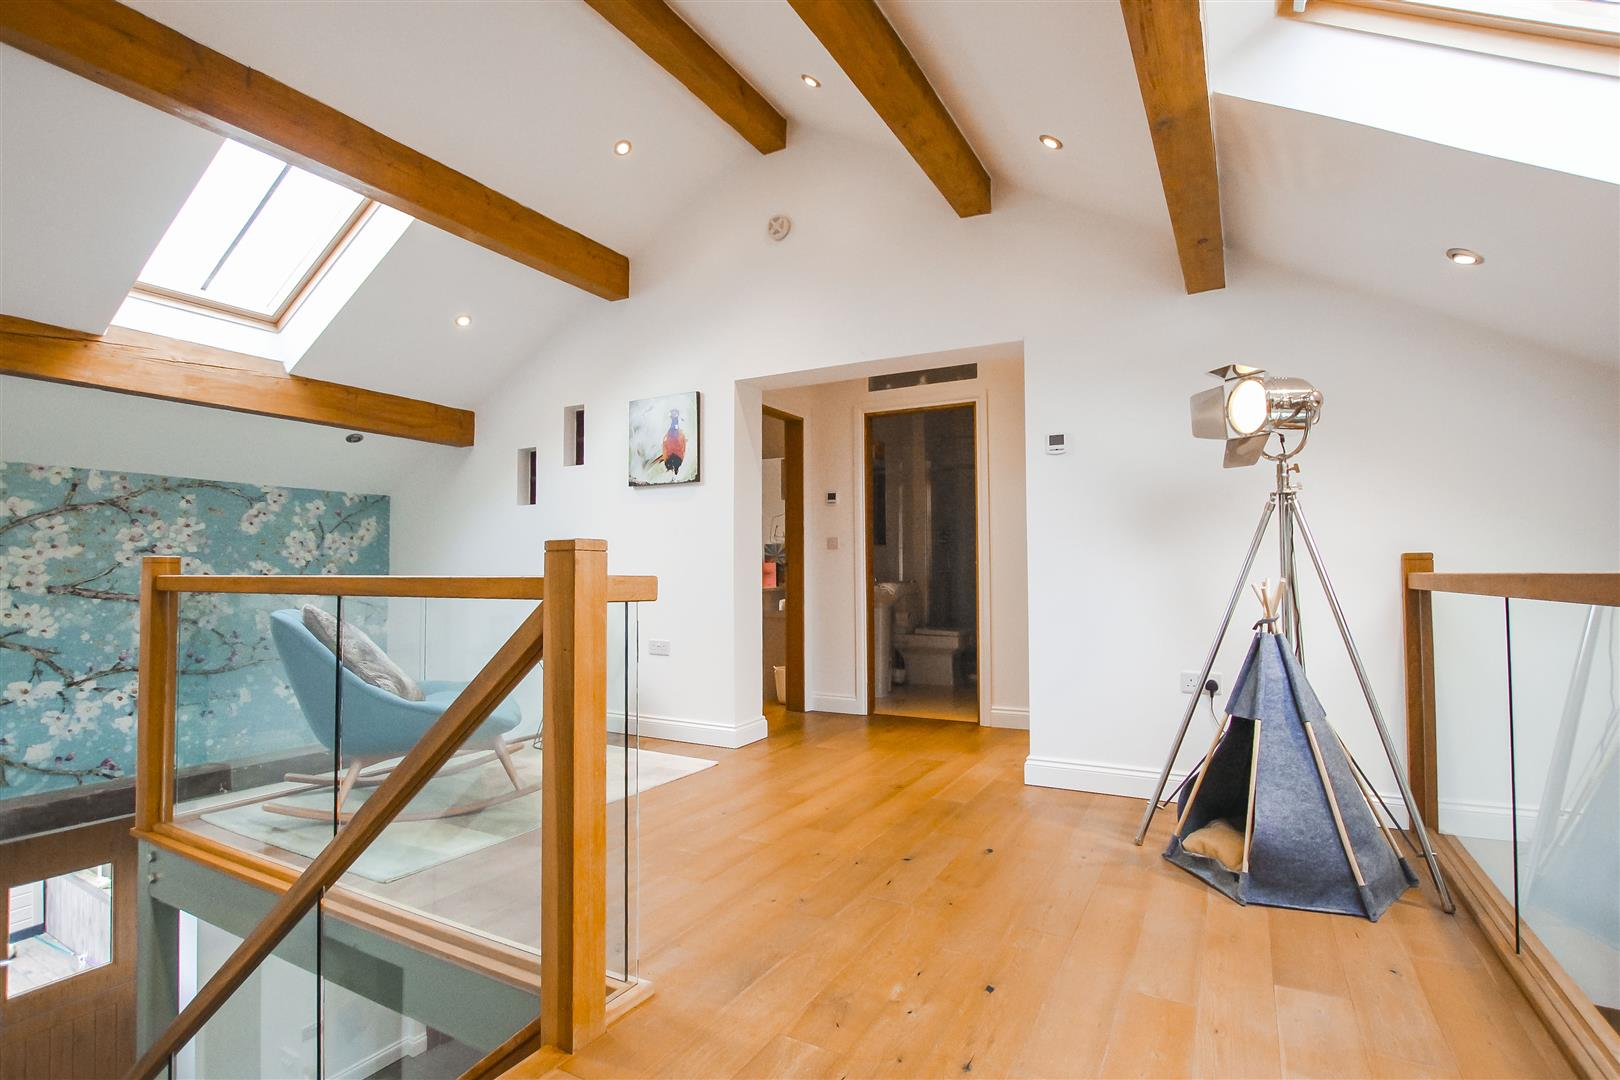 4 Bedroom Barn Conversion For Sale - Landing